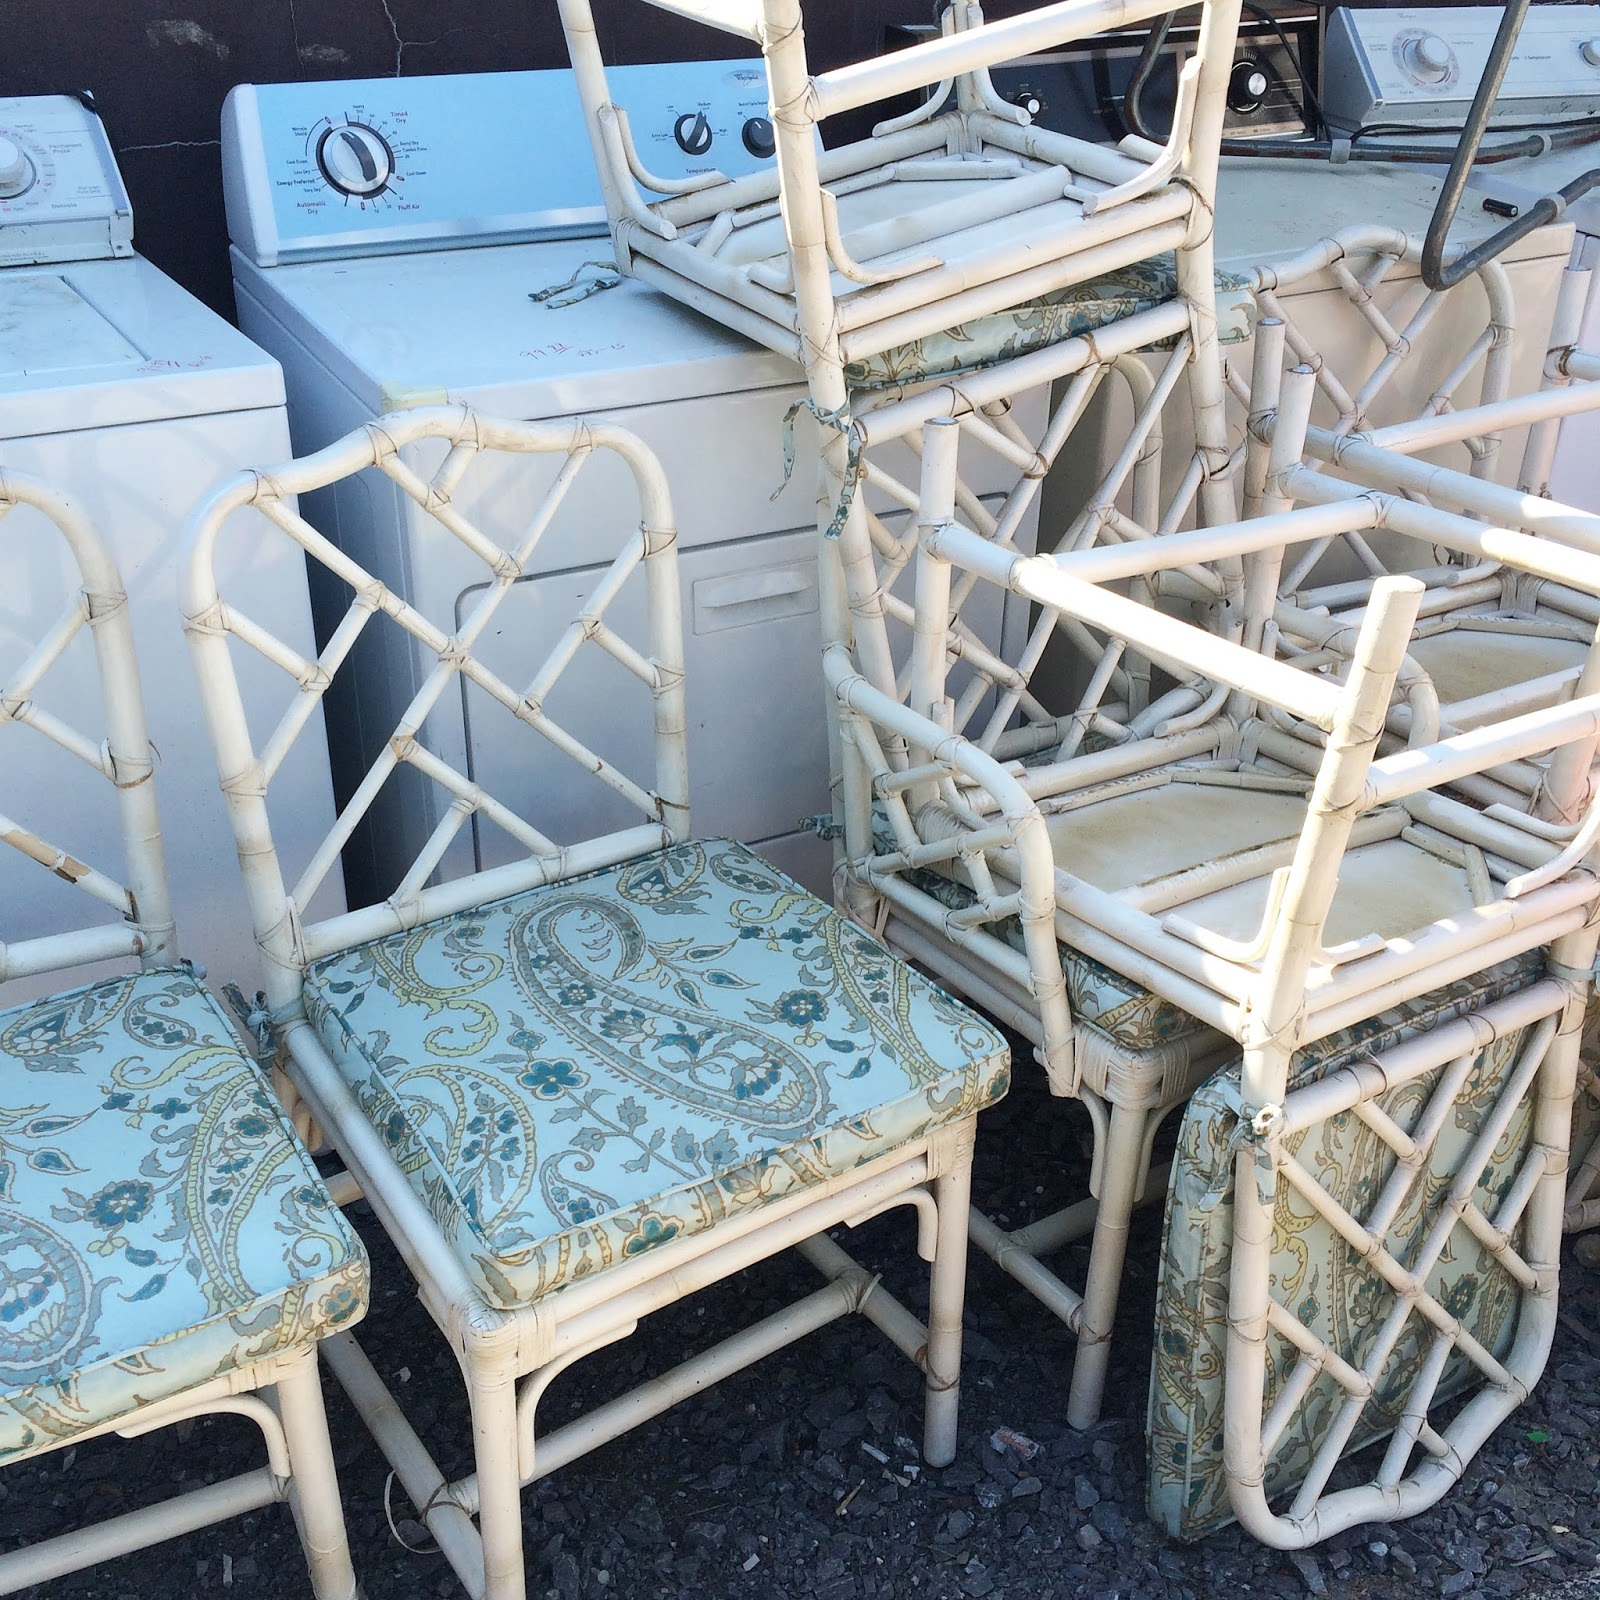 This Was How I Found The Chairs At Thrift They Hadn T Even Been Priced Or Taken Inside Yet